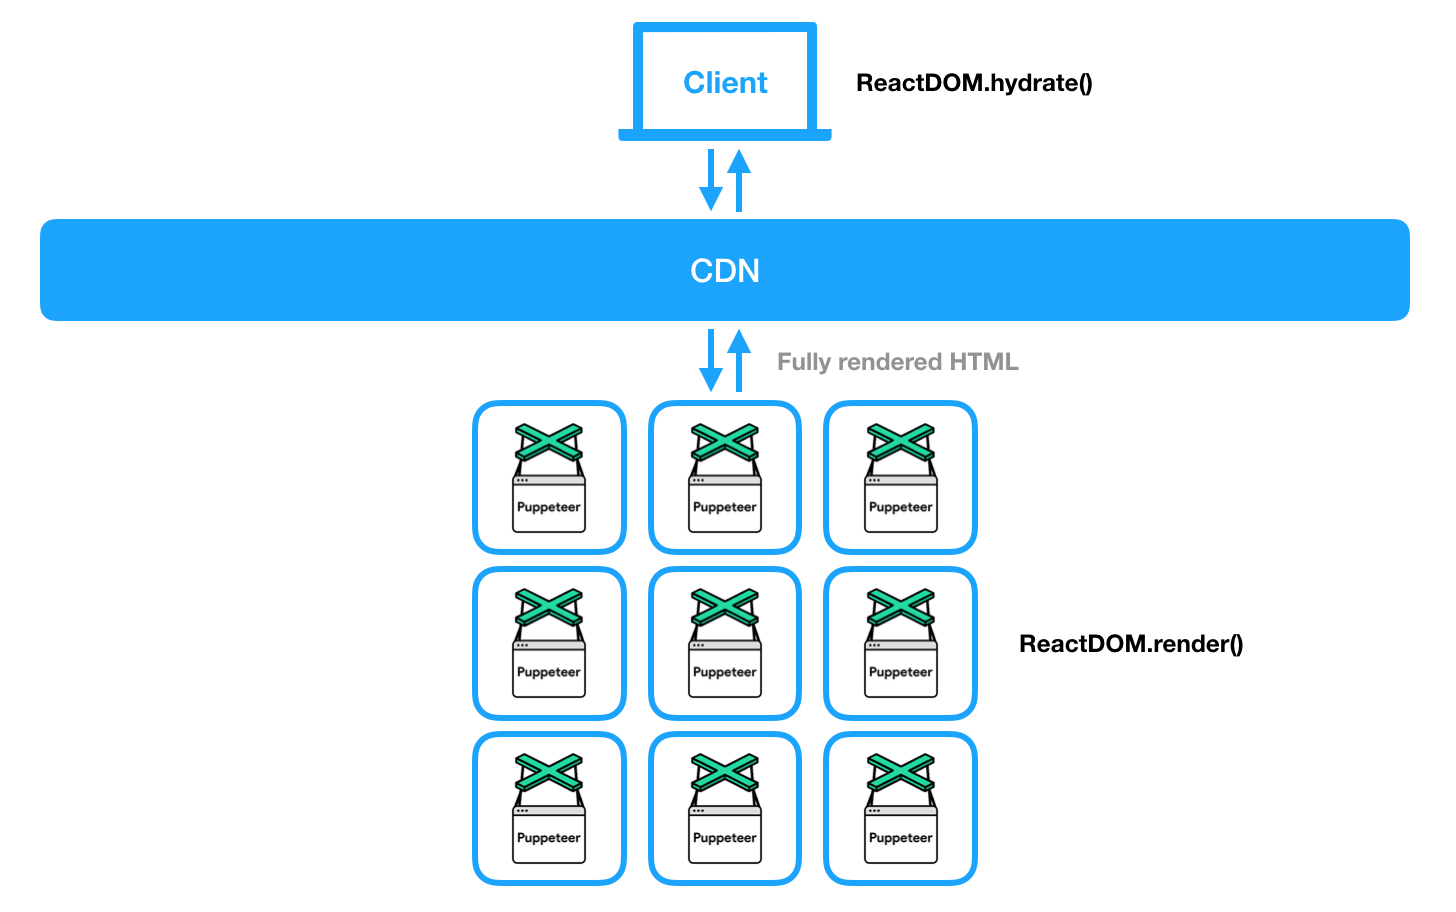 The architecture of server-side rendering with Puppeteer